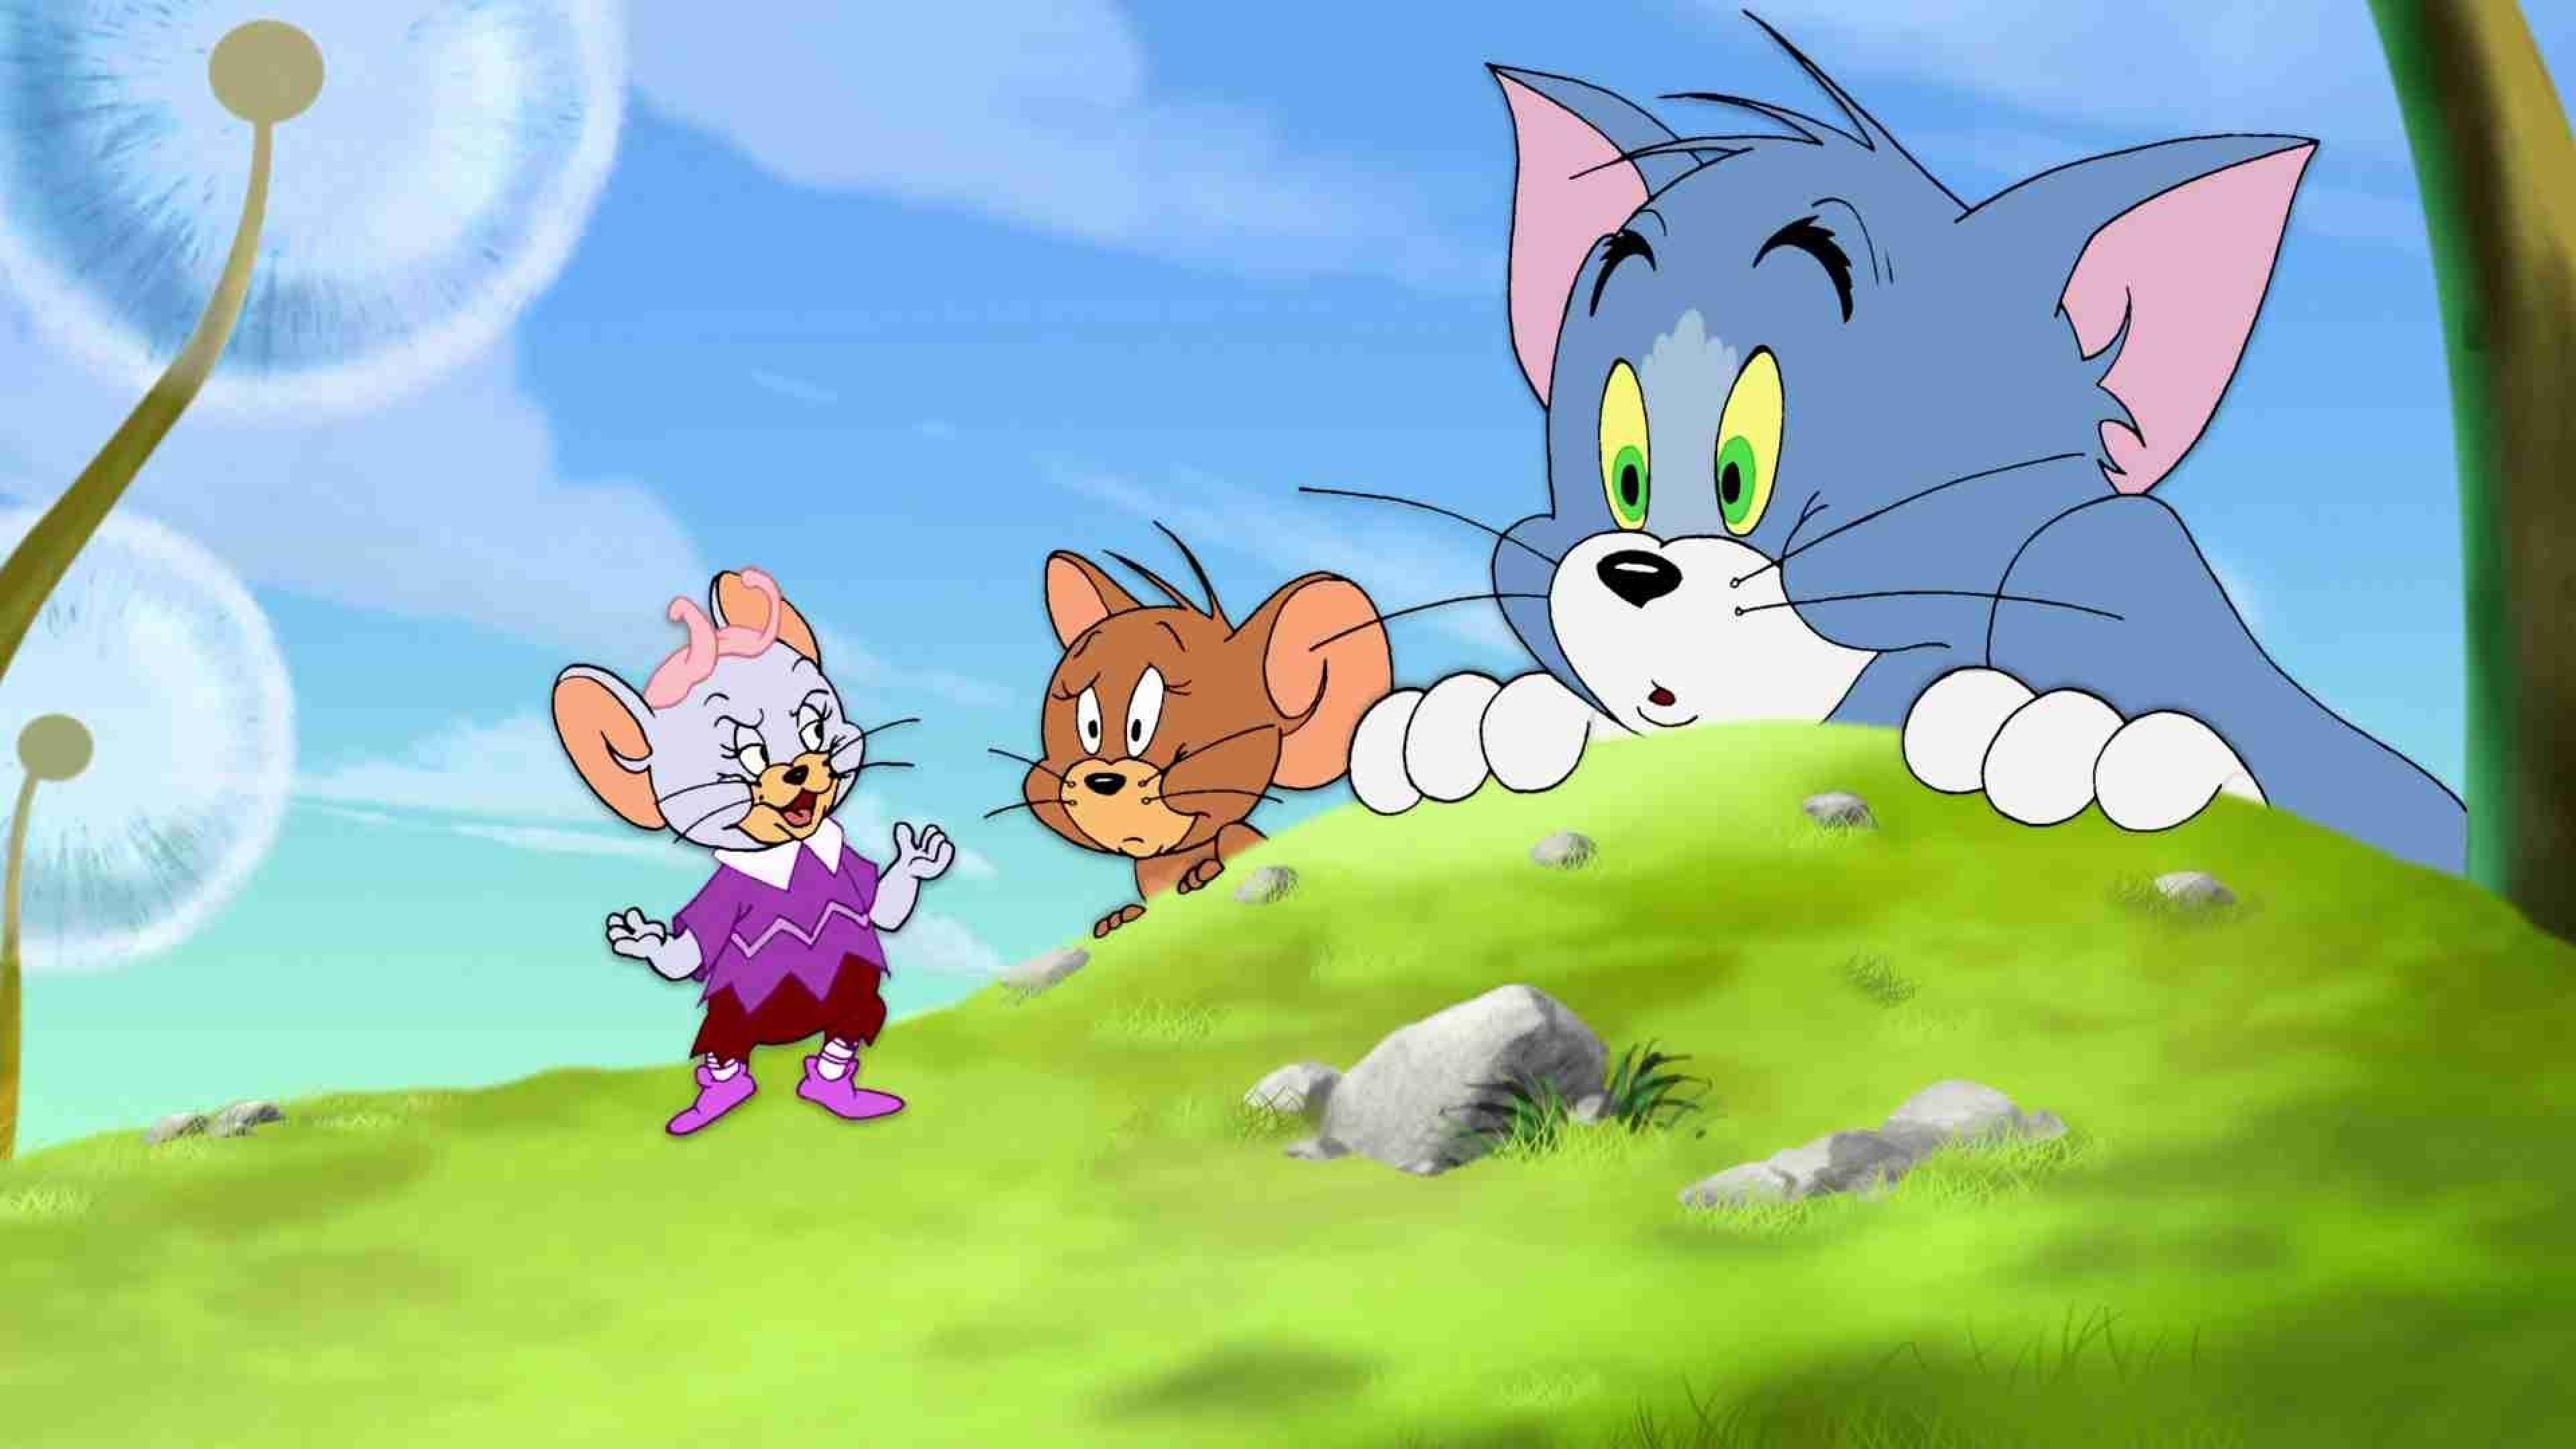 Tom And Jerry Cartoon Grass Hd Wallpapers Freshwidewallpapers